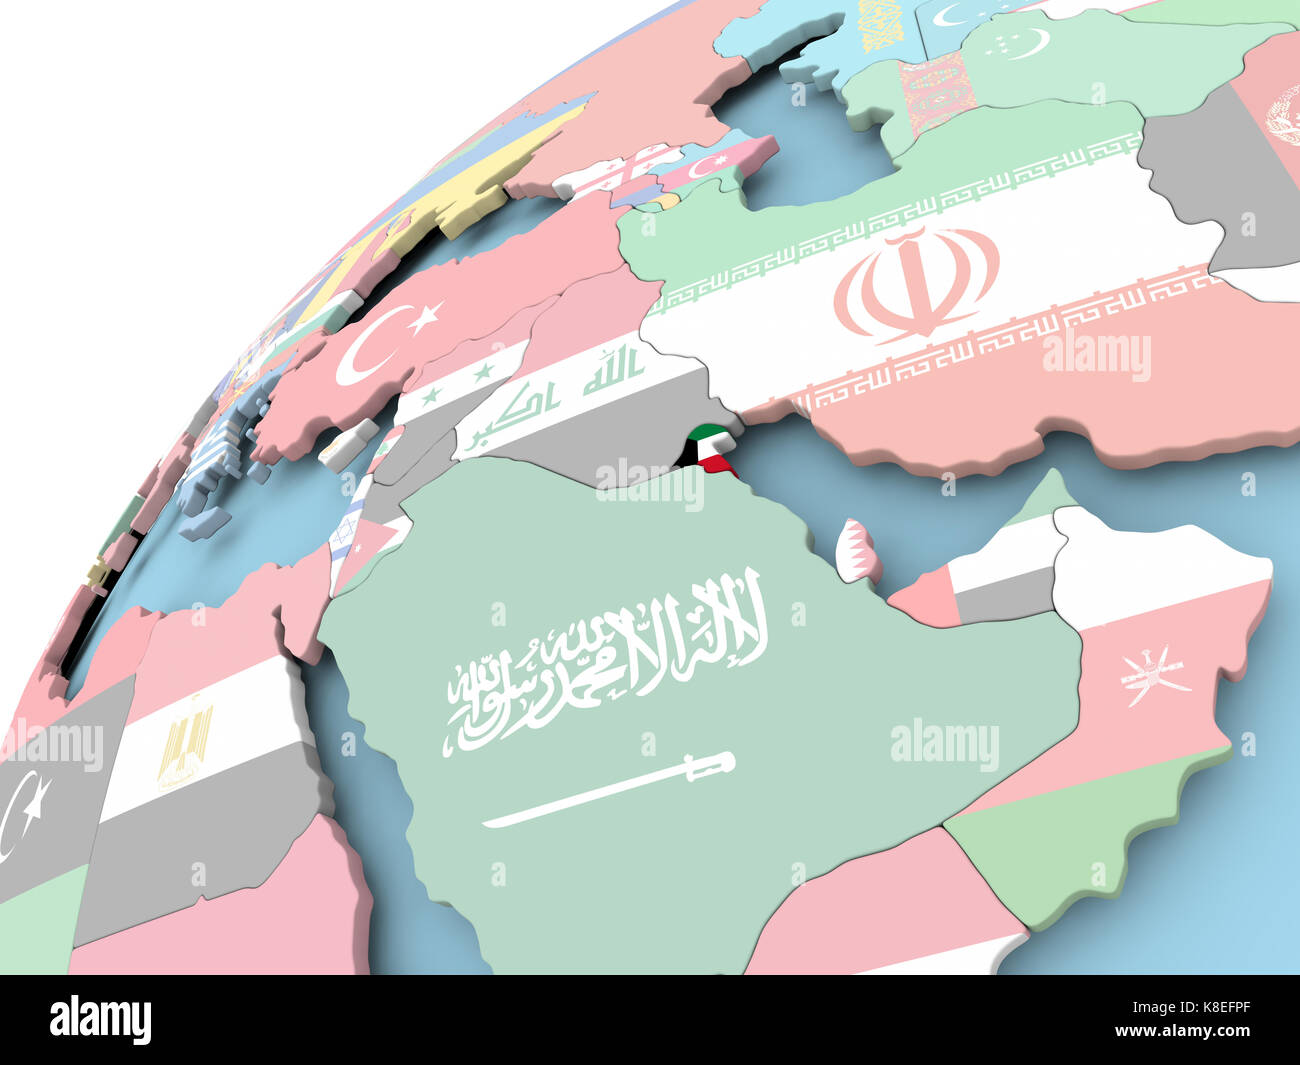 Map of Kuwait on political globe with embedded flag. 3D illustration Kuwait On A Map on euphrates river on a map, iraq on a map, yemen on a map, turkey on a map, dubai on a map, cyprus on a map, israel on a map, jordan on a map, karachi on a map, lesotho on a map, pakistan on a map, albania on a map, tigris river on a map, bahrain on a map, lebanon on a map, tunisia on a map, dead sea on a map, brunei on a map, djibouti on a map, qatar on a map,